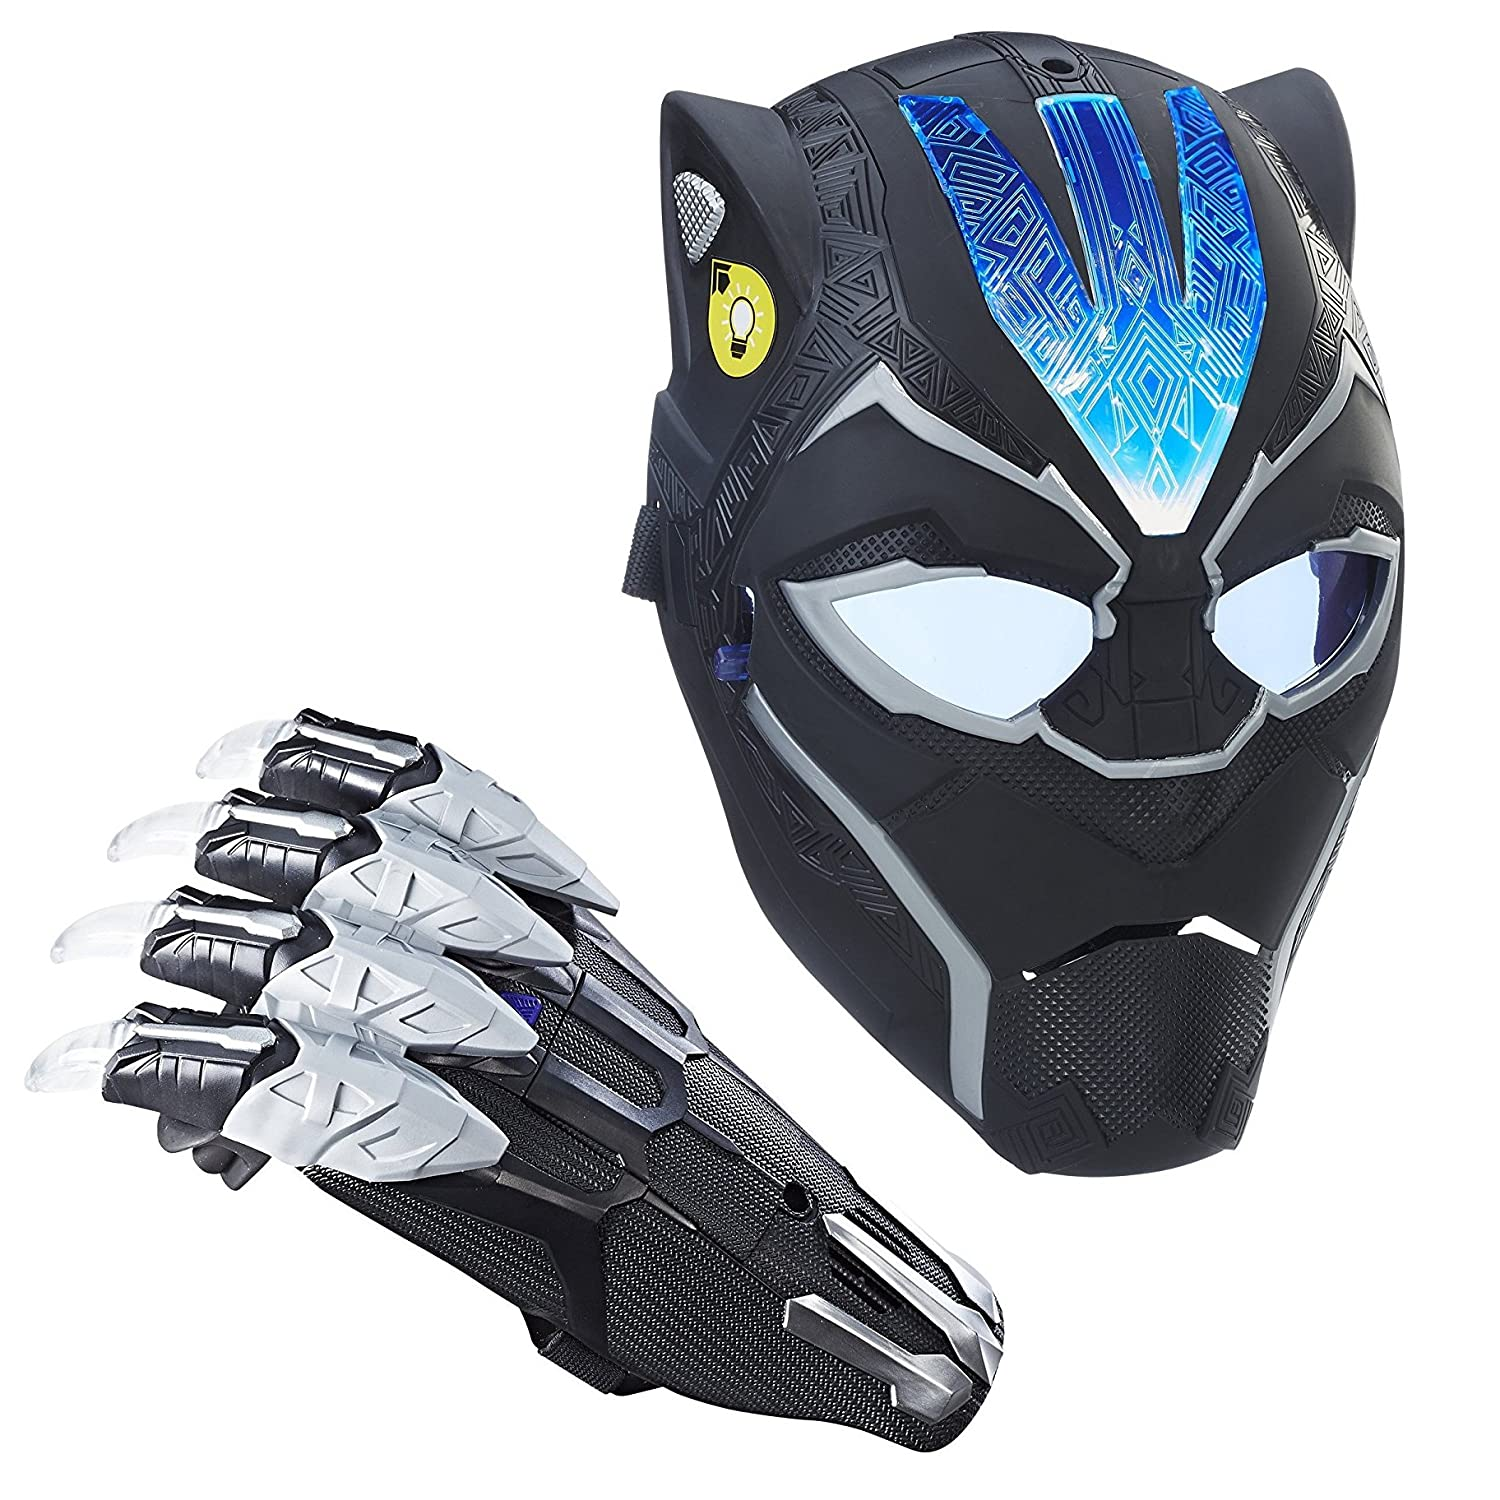 Marvel Black Panther Vibranium Power FX Mask and Claw Bundle Hasbro Inc.